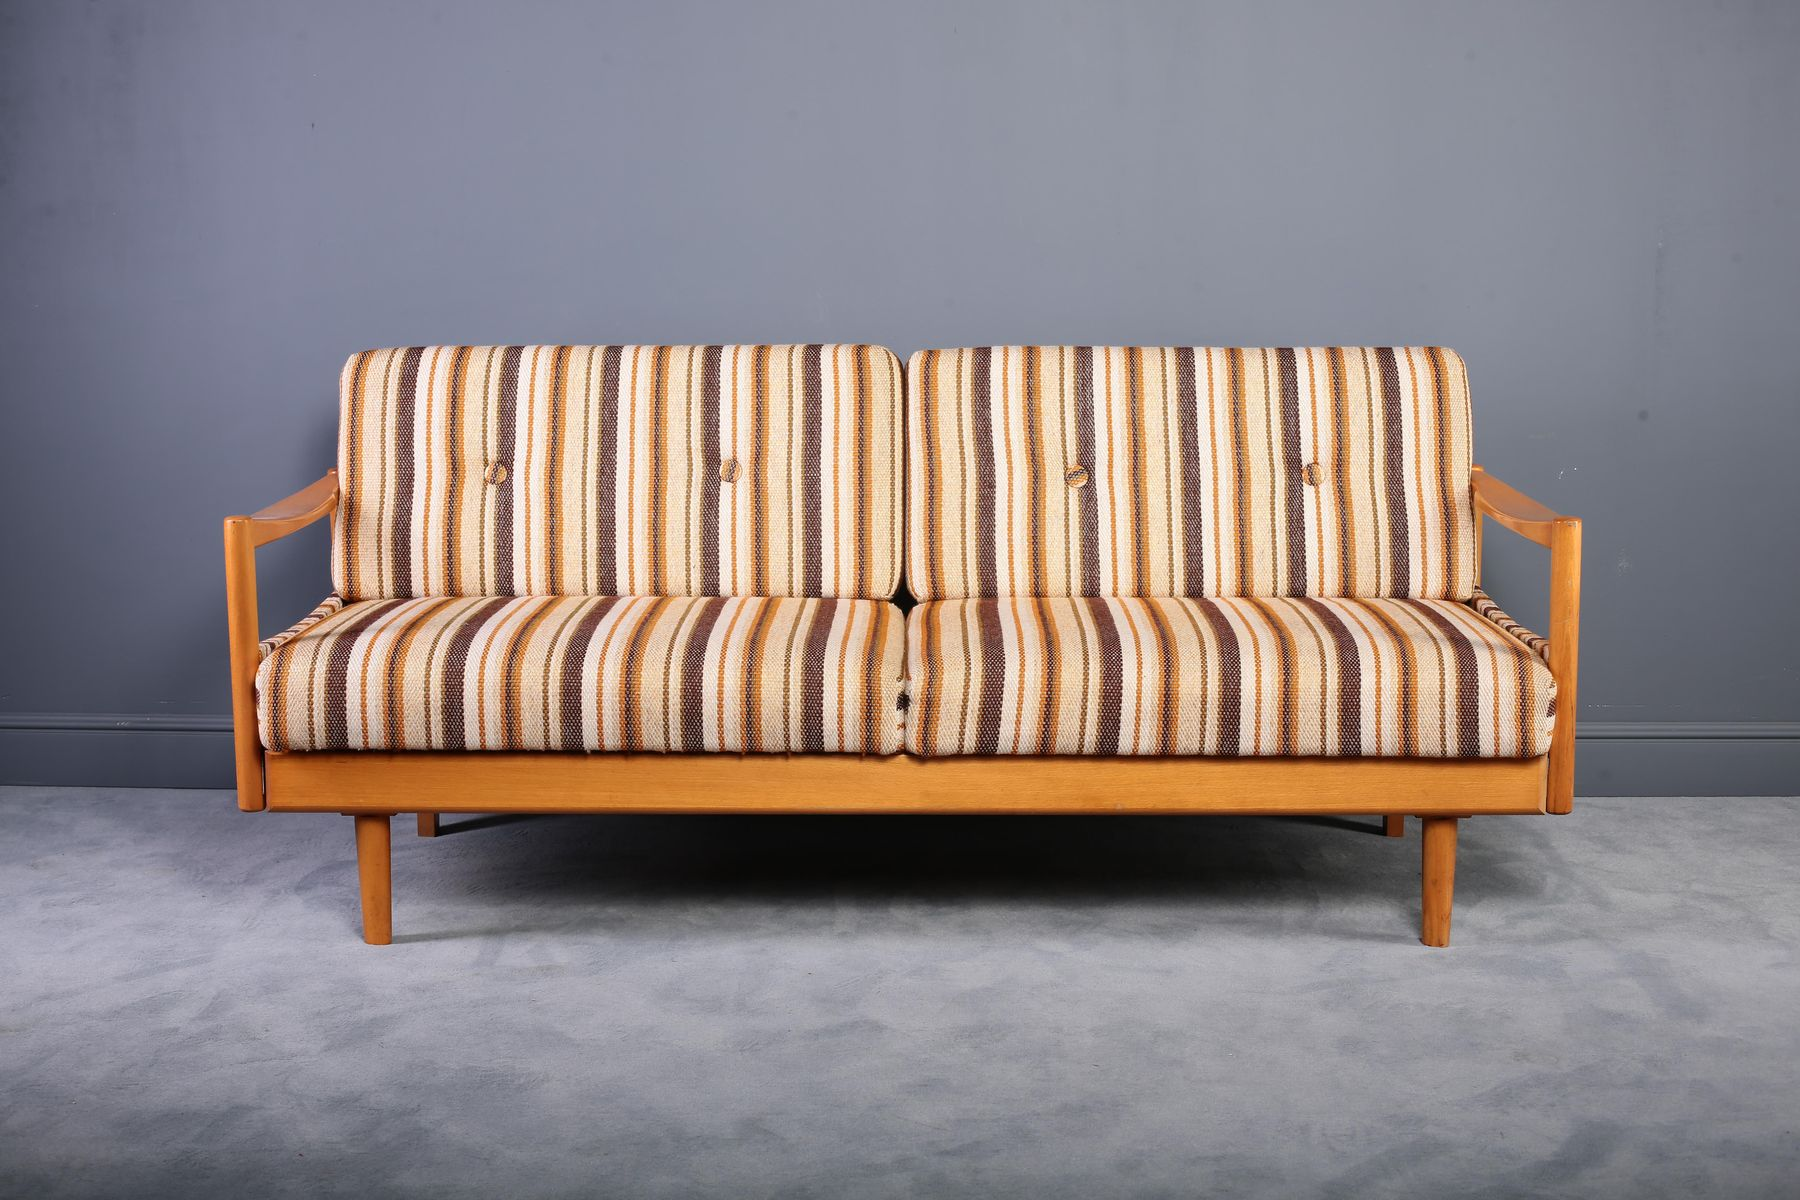 Extendable Oak Daybed or Sofa, 1960s for sale at Pamono